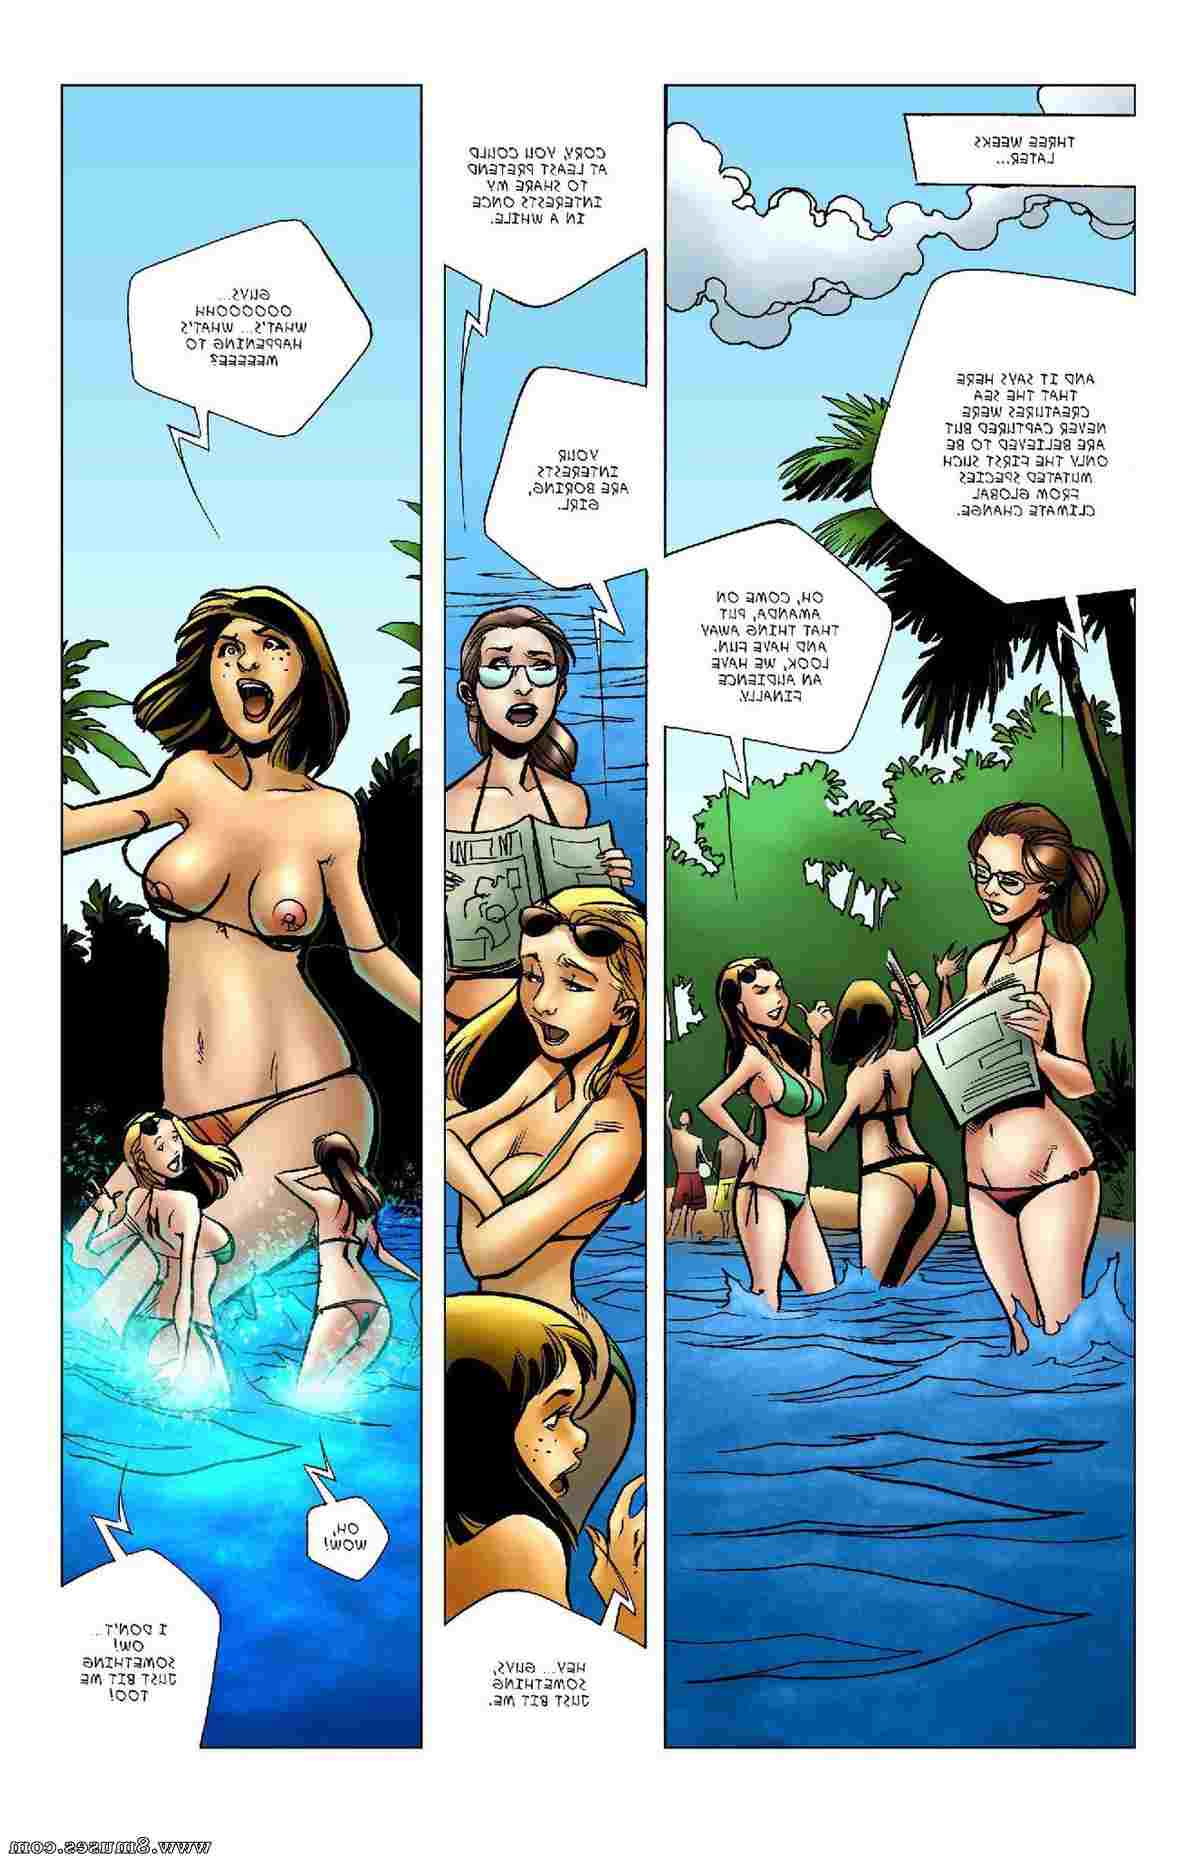 Giantess-Club-Comics/Bubbling-Up-from-the-Abyss Bubbling_Up_from_the_Abyss__8muses_-_Sex_and_Porn_Comics_82.jpg